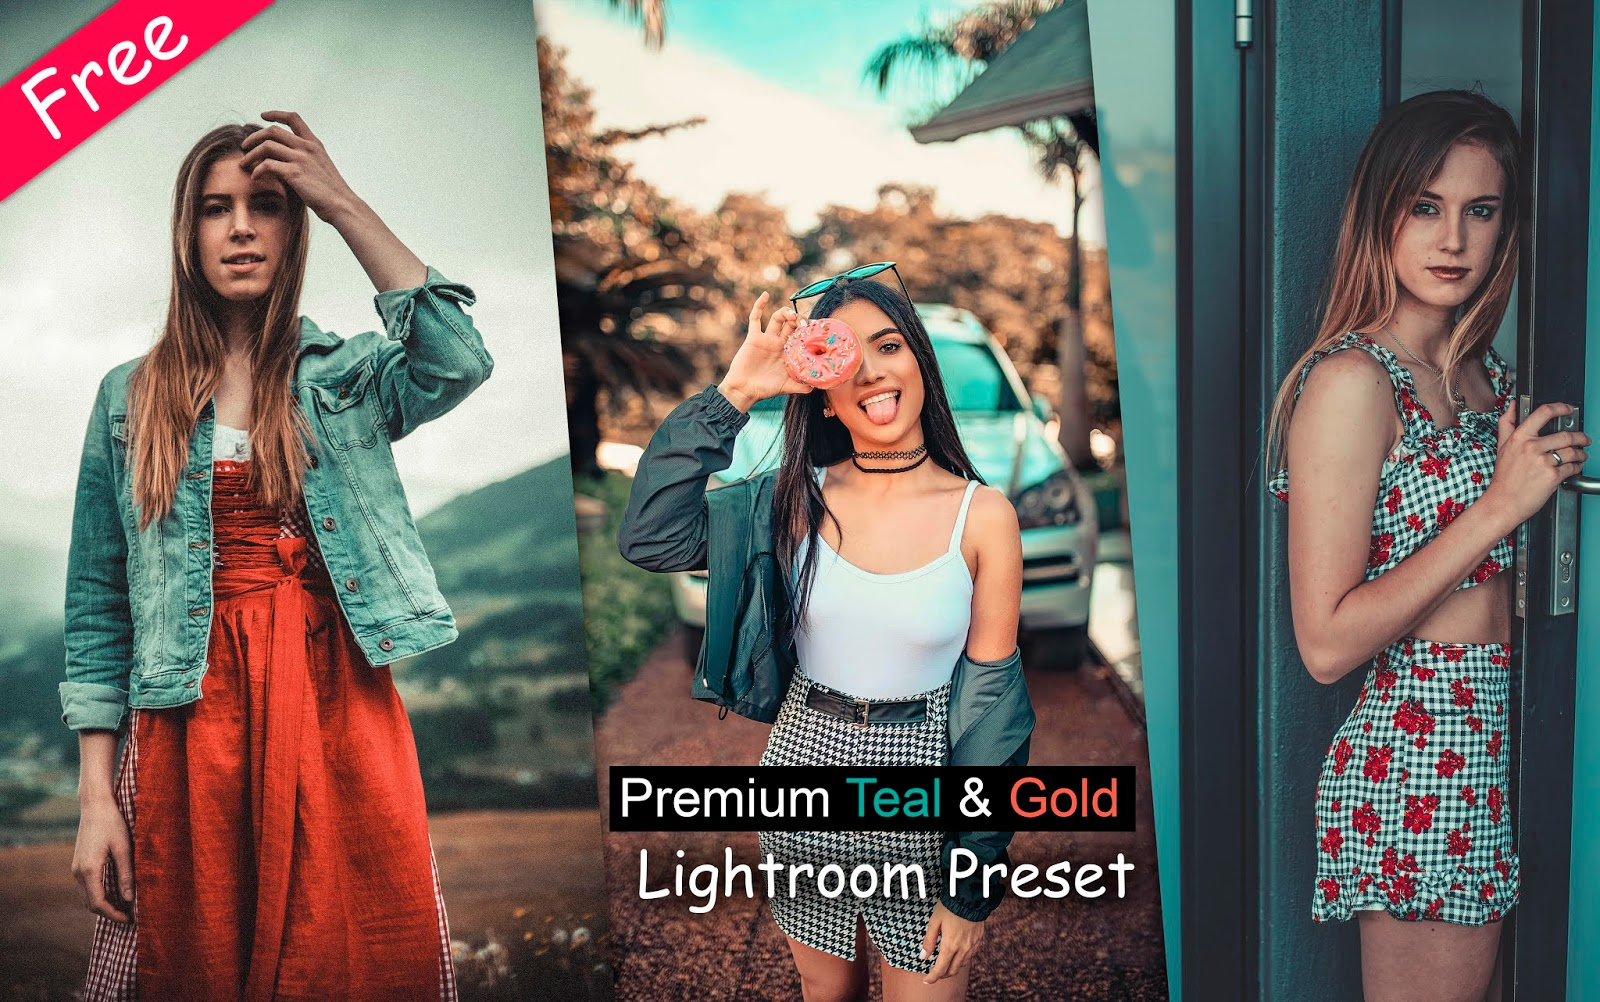 Download Premium Teal & Gold Lightroom Preset for Free | How to Edit Teal & Orange in Lightroom